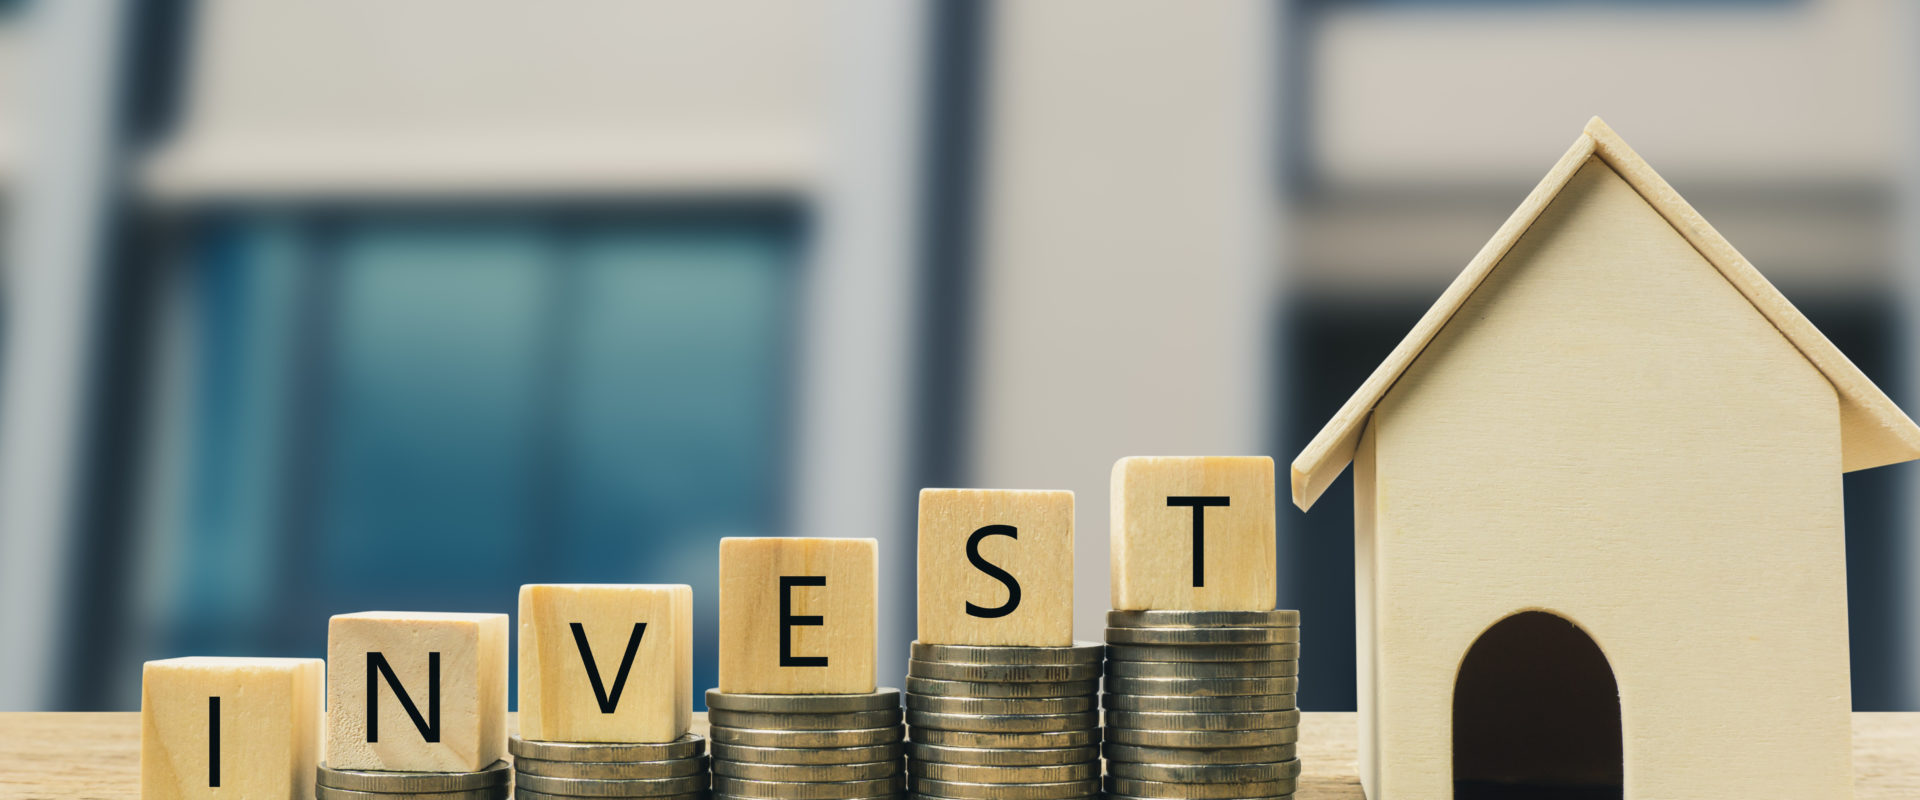 Renewed Optimism in Buy To Let: Two in Three Landlords Plan To Invest in Property in 2020